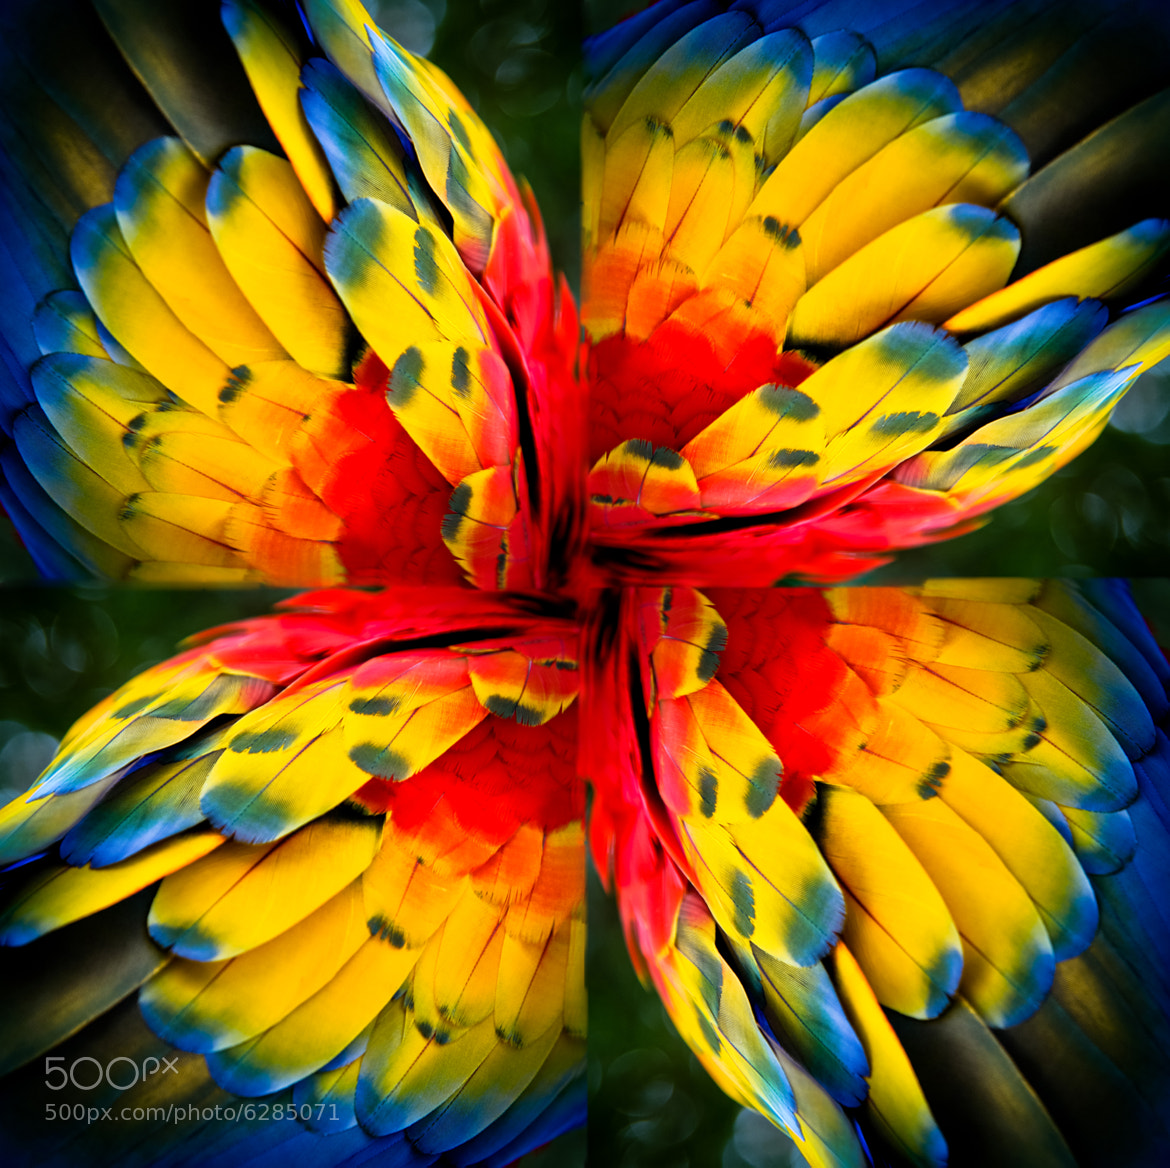 Photograph red mexican guacamaya flower by Enrique Olvera on 500px